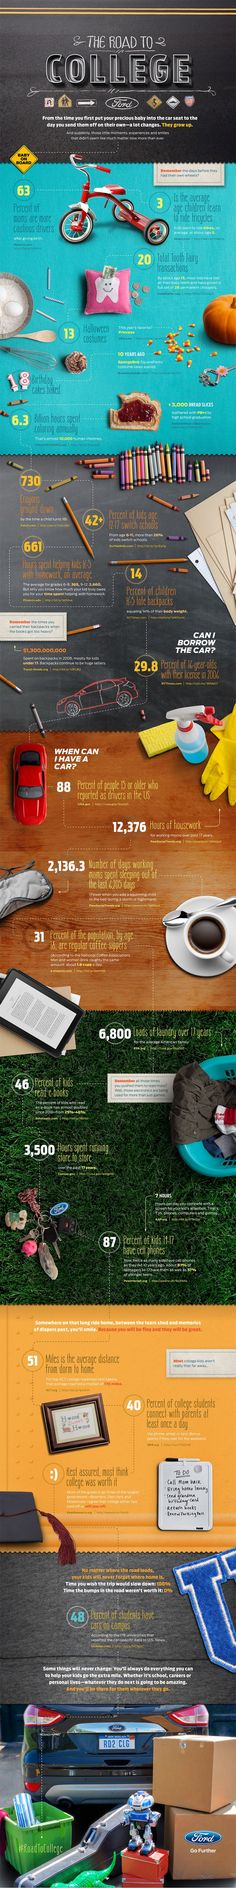 Unique Infographic Design, The Road to College #Inforgraphic #Design (http://www.pinterest.com/aldenchong/)